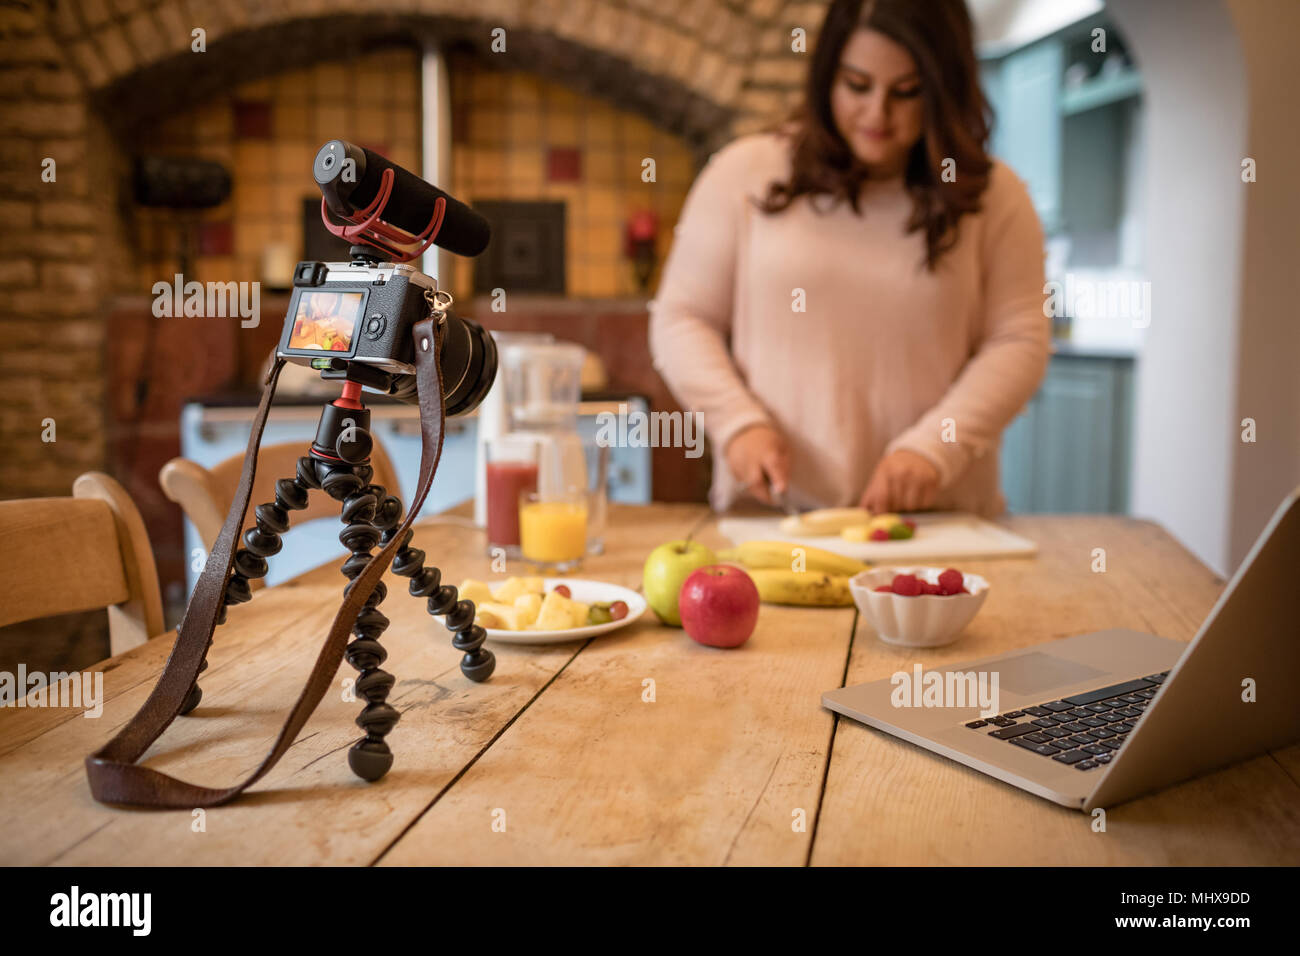 Female vlogger cutting fruit on chopping board - Stock Image